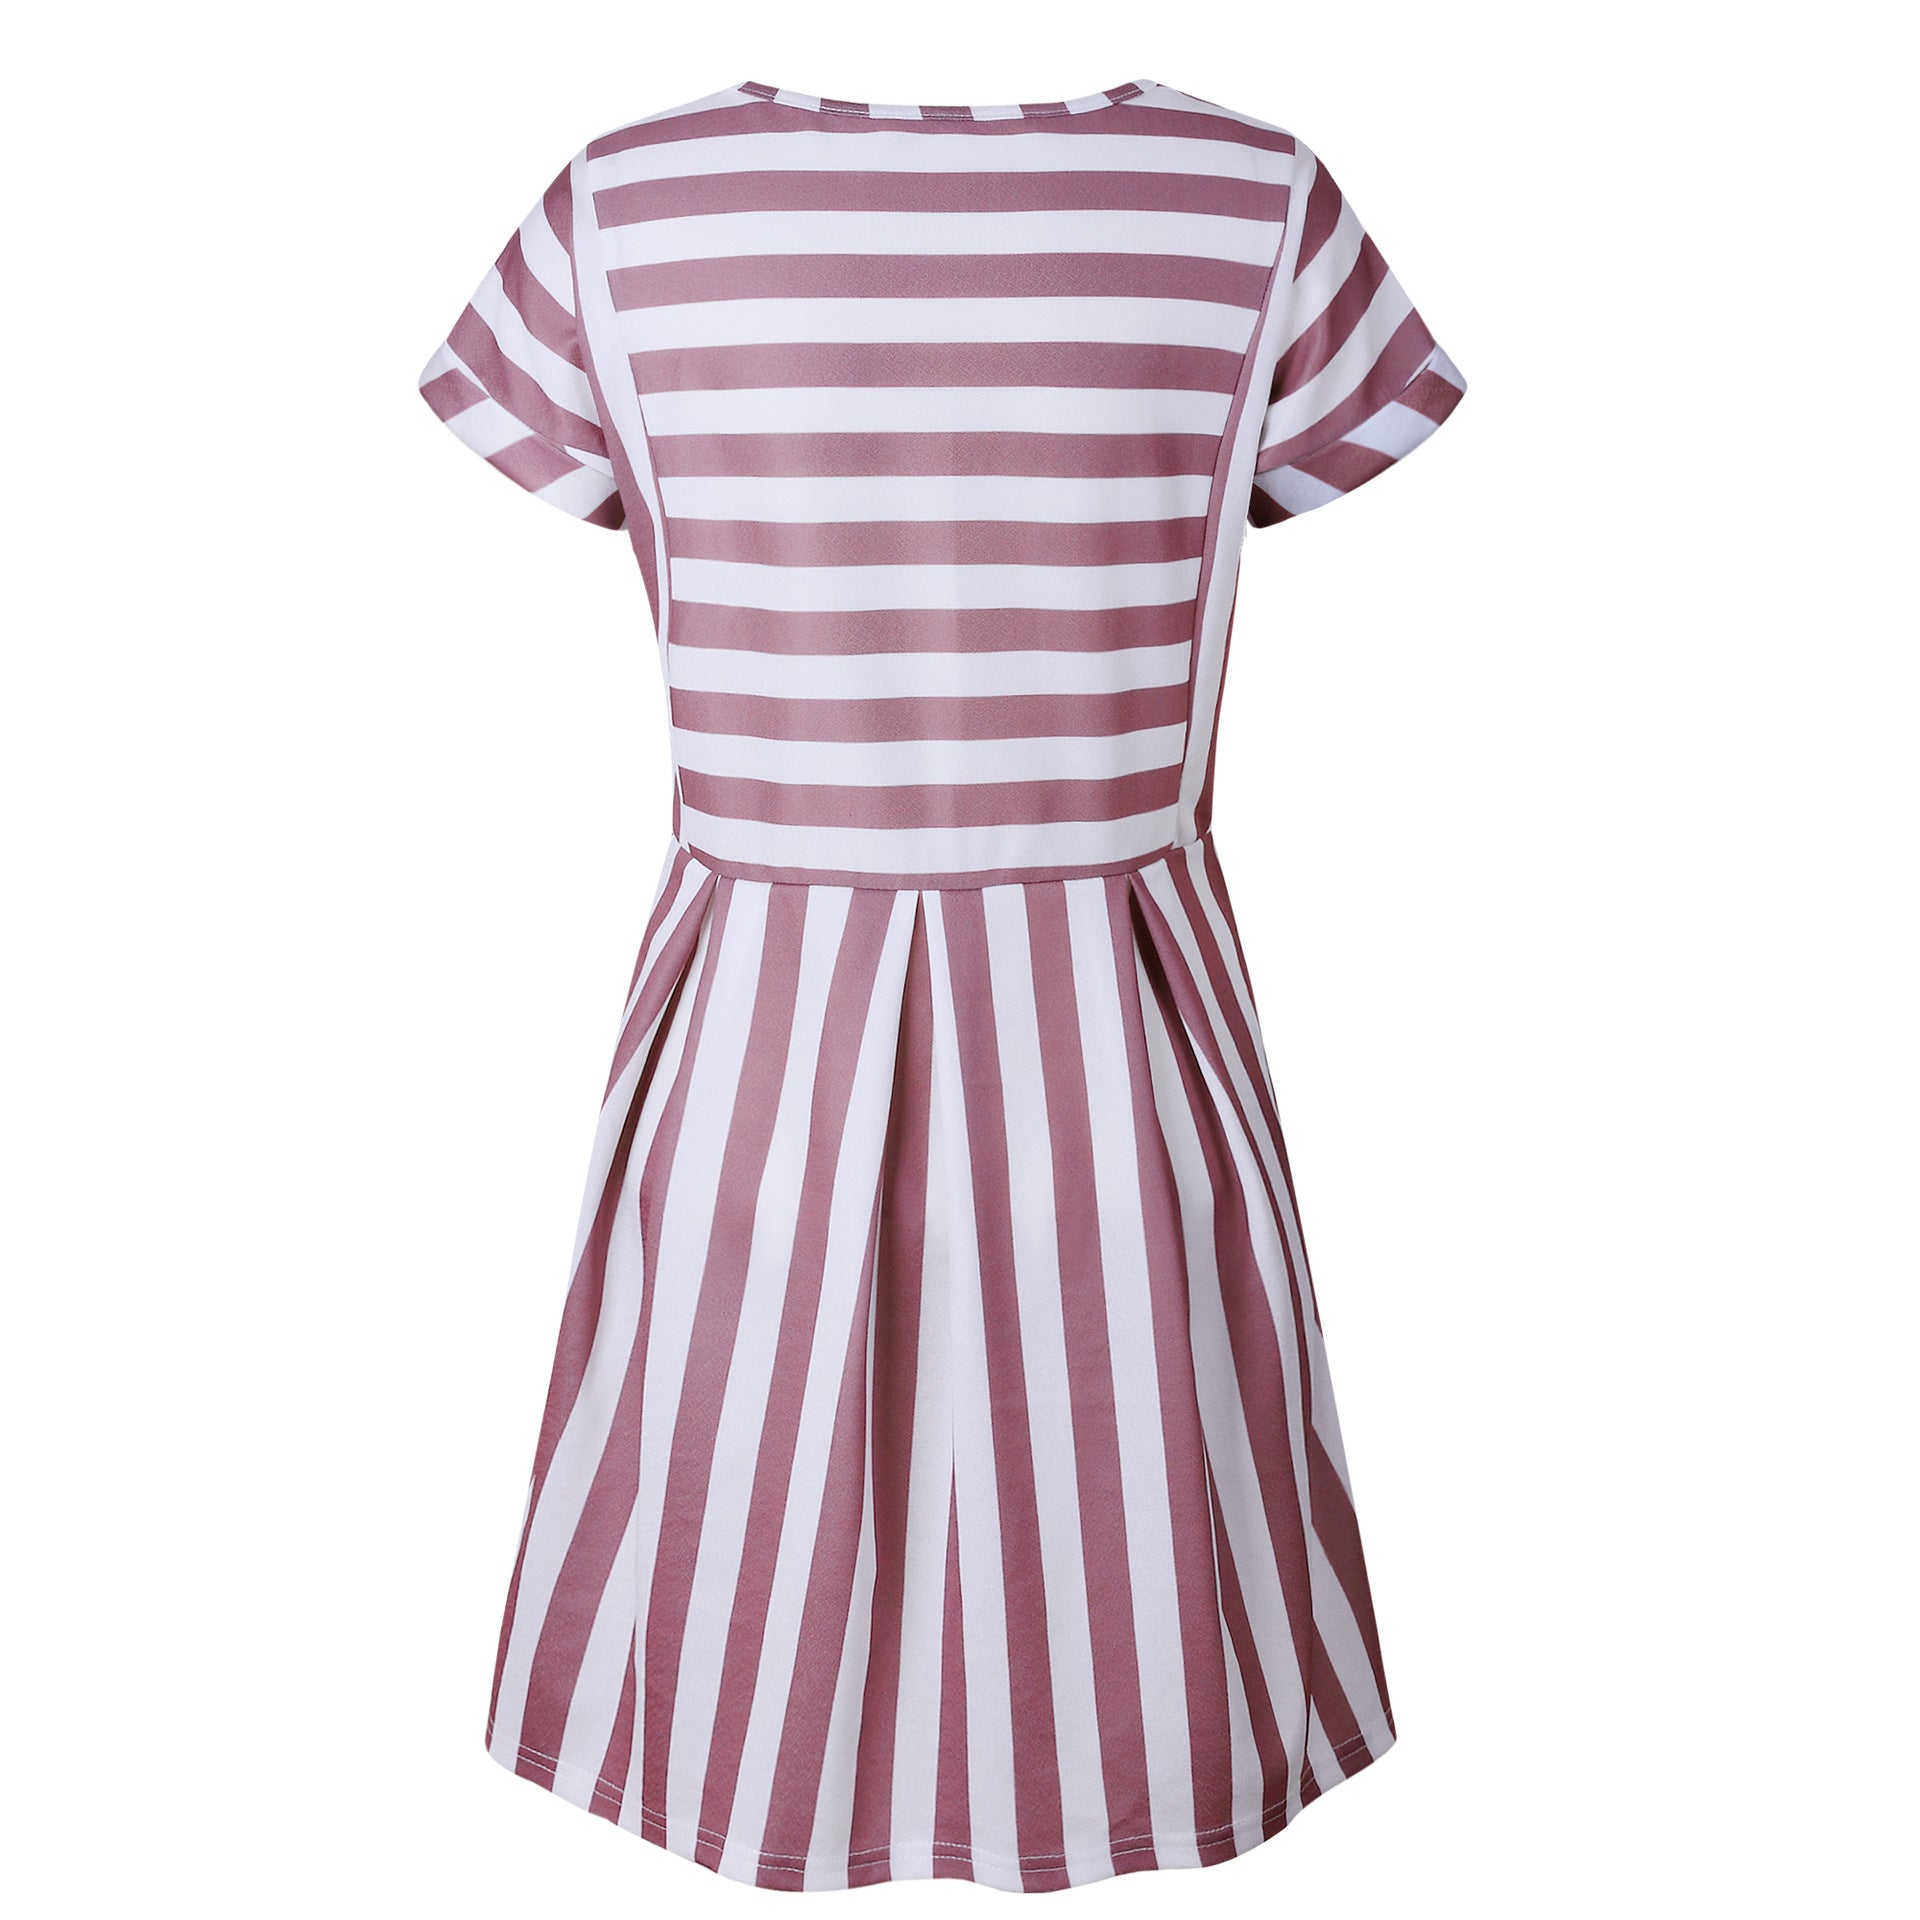 Slimming High Waisted Striped Short Sleeve Swing Dress